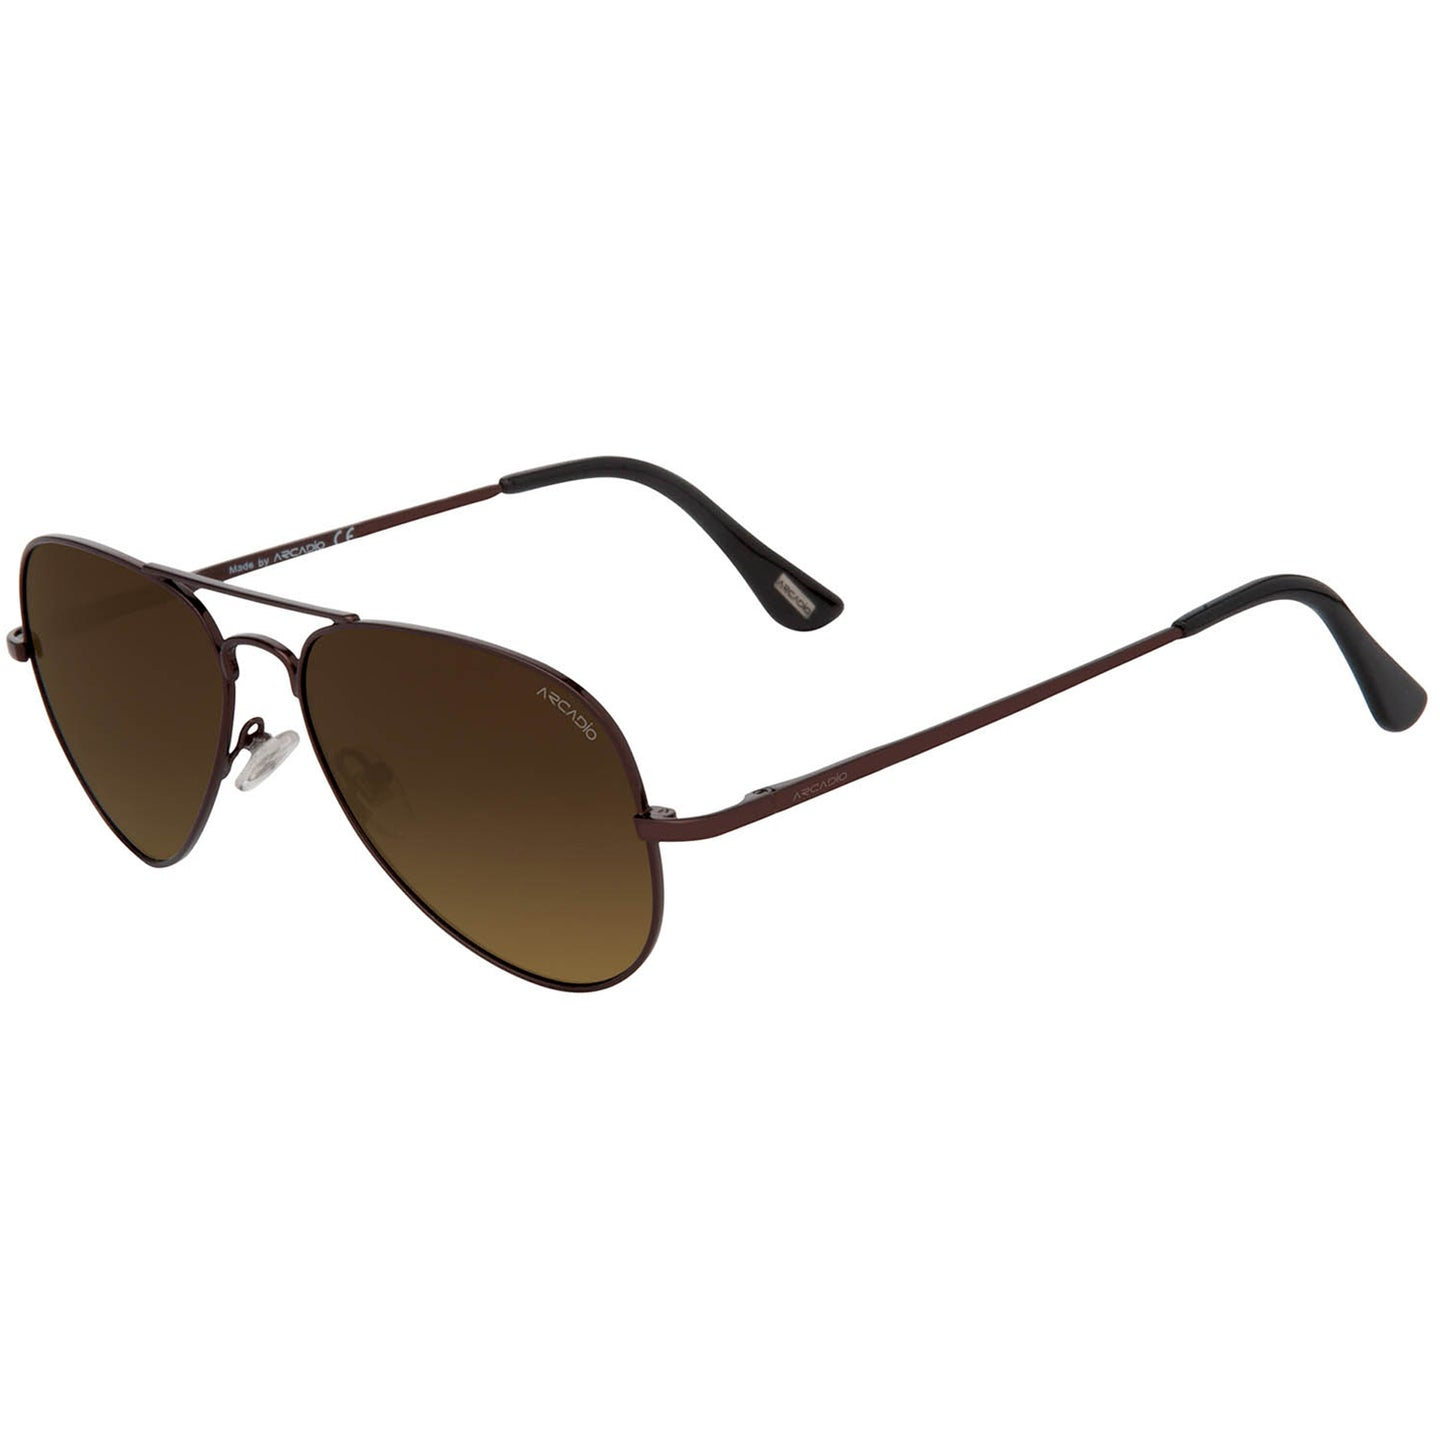 Unisex Fashionable Sunglass - AR117-58 - ARCADIO LIFESTYLE